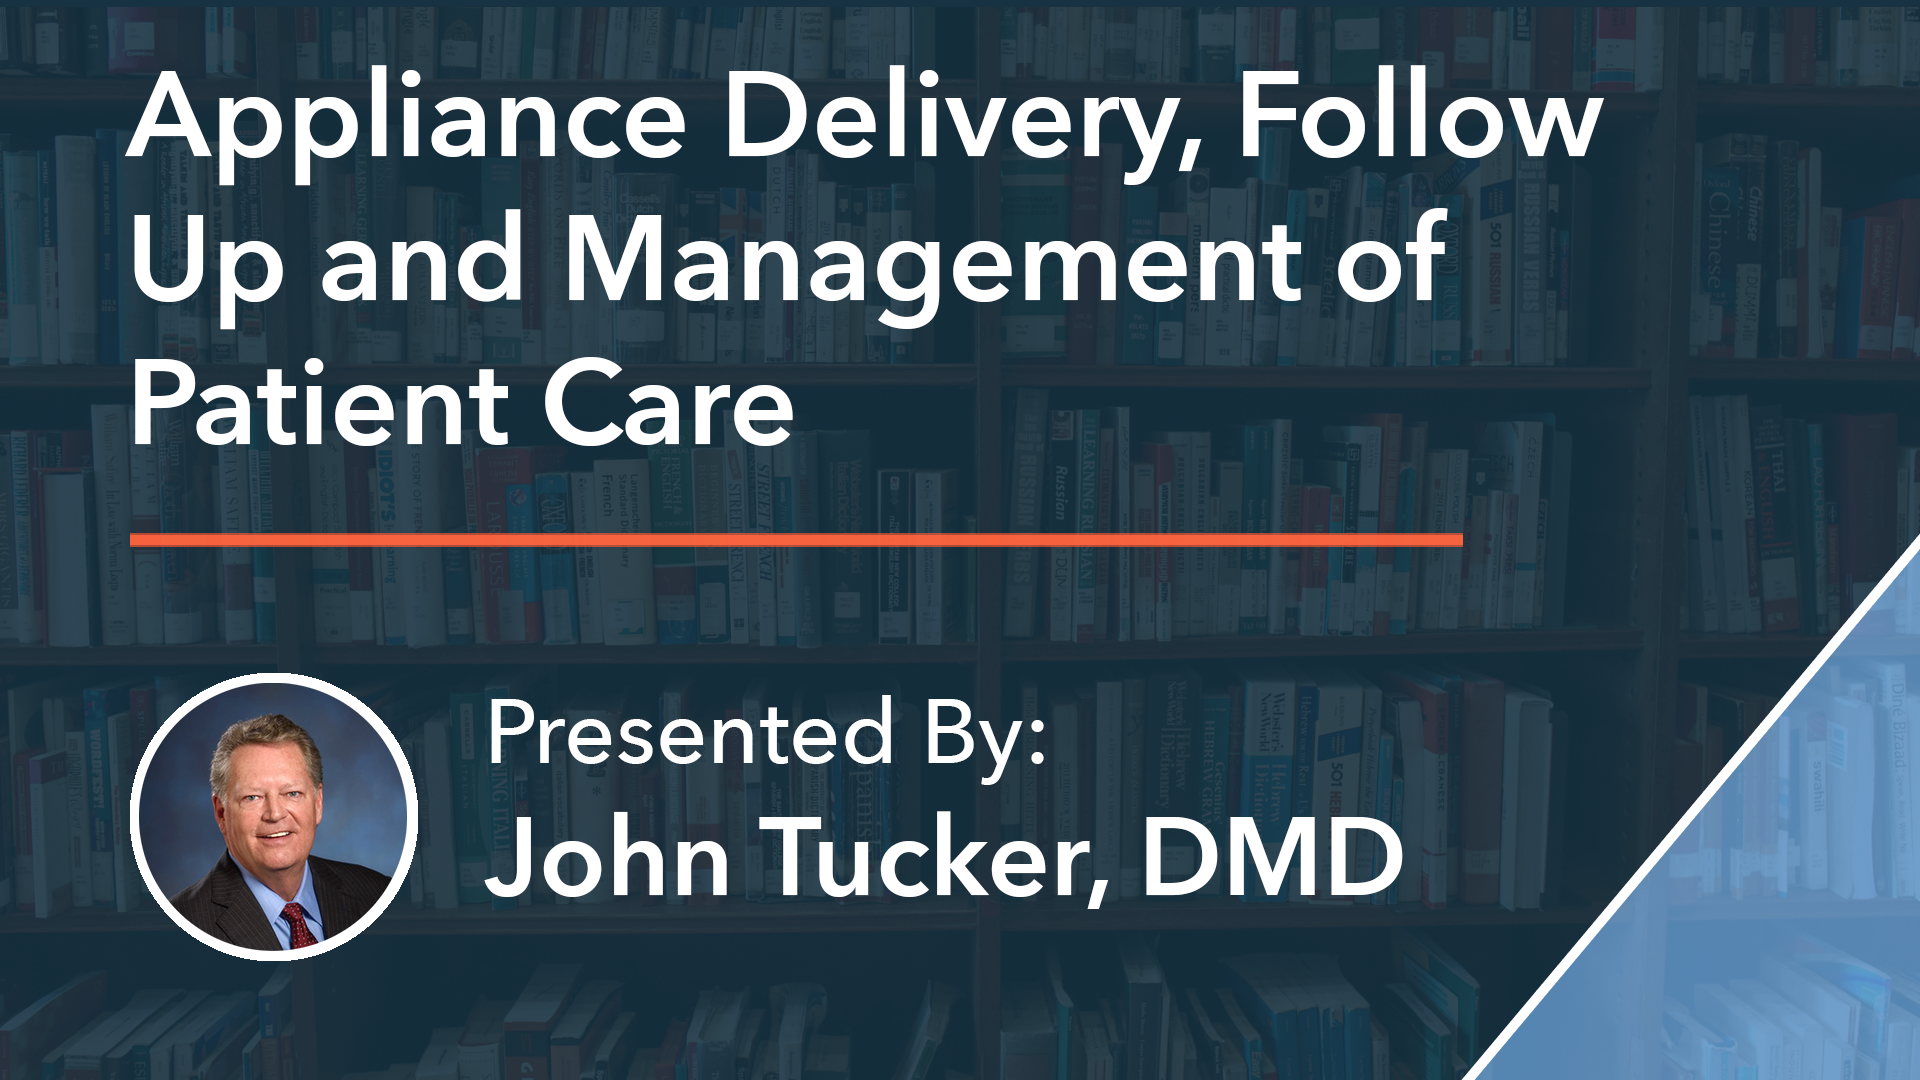 Appliance Delivery, Follow Up and Management of Patient Care Dr John Tucker